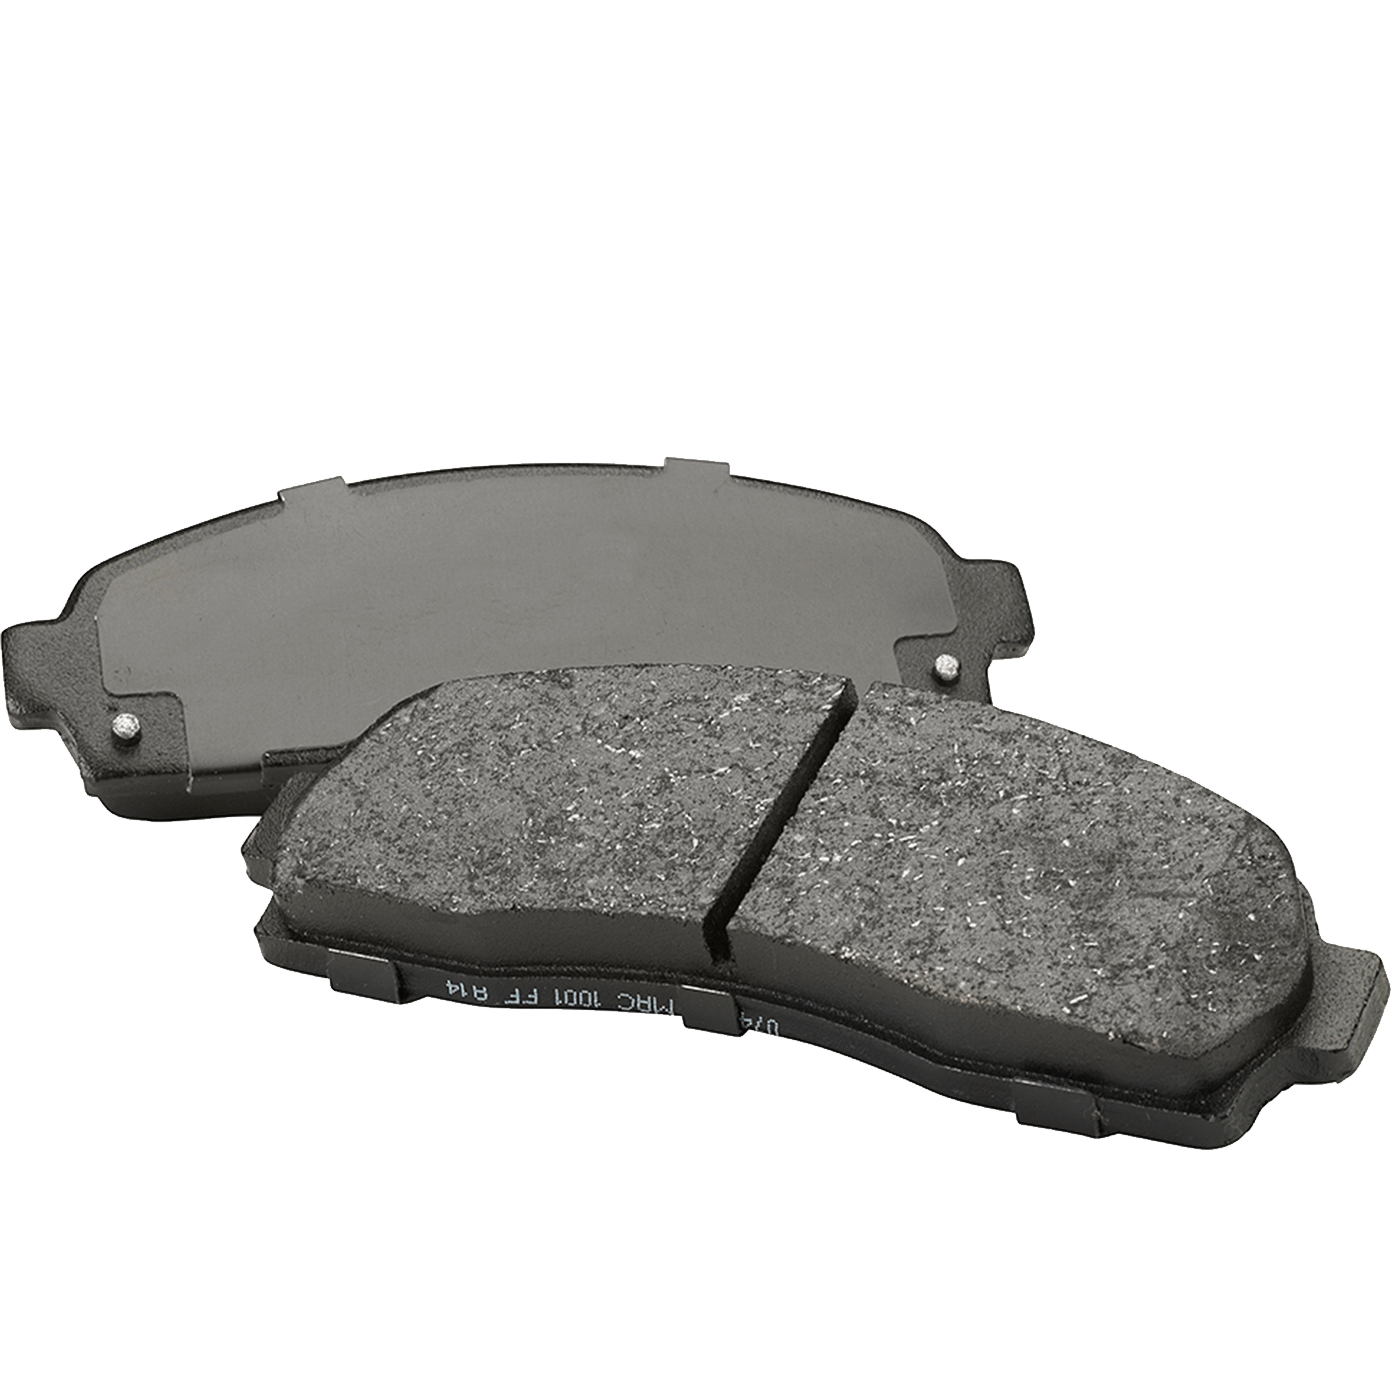 5 Best Brake Pads With Reviews - 2017 | ResearchCoreresearchcore org